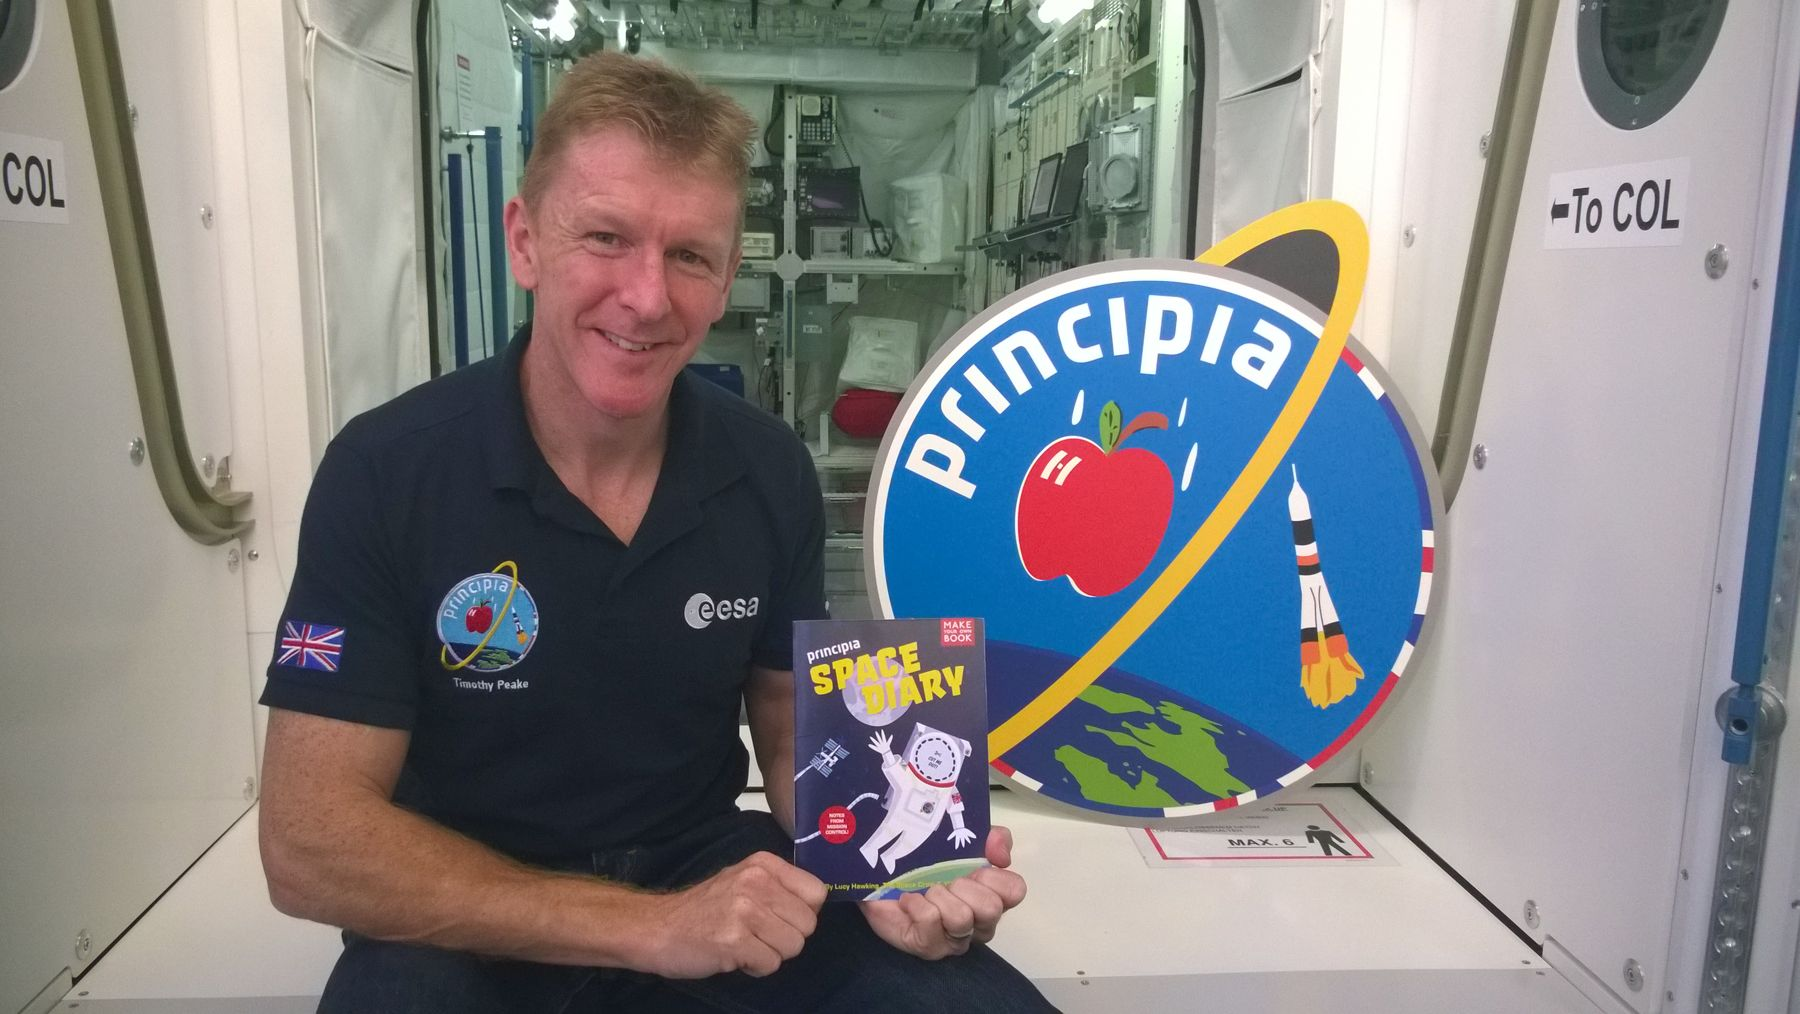 Where to Watch ESA Astronaut Tim Peake Return to Earth